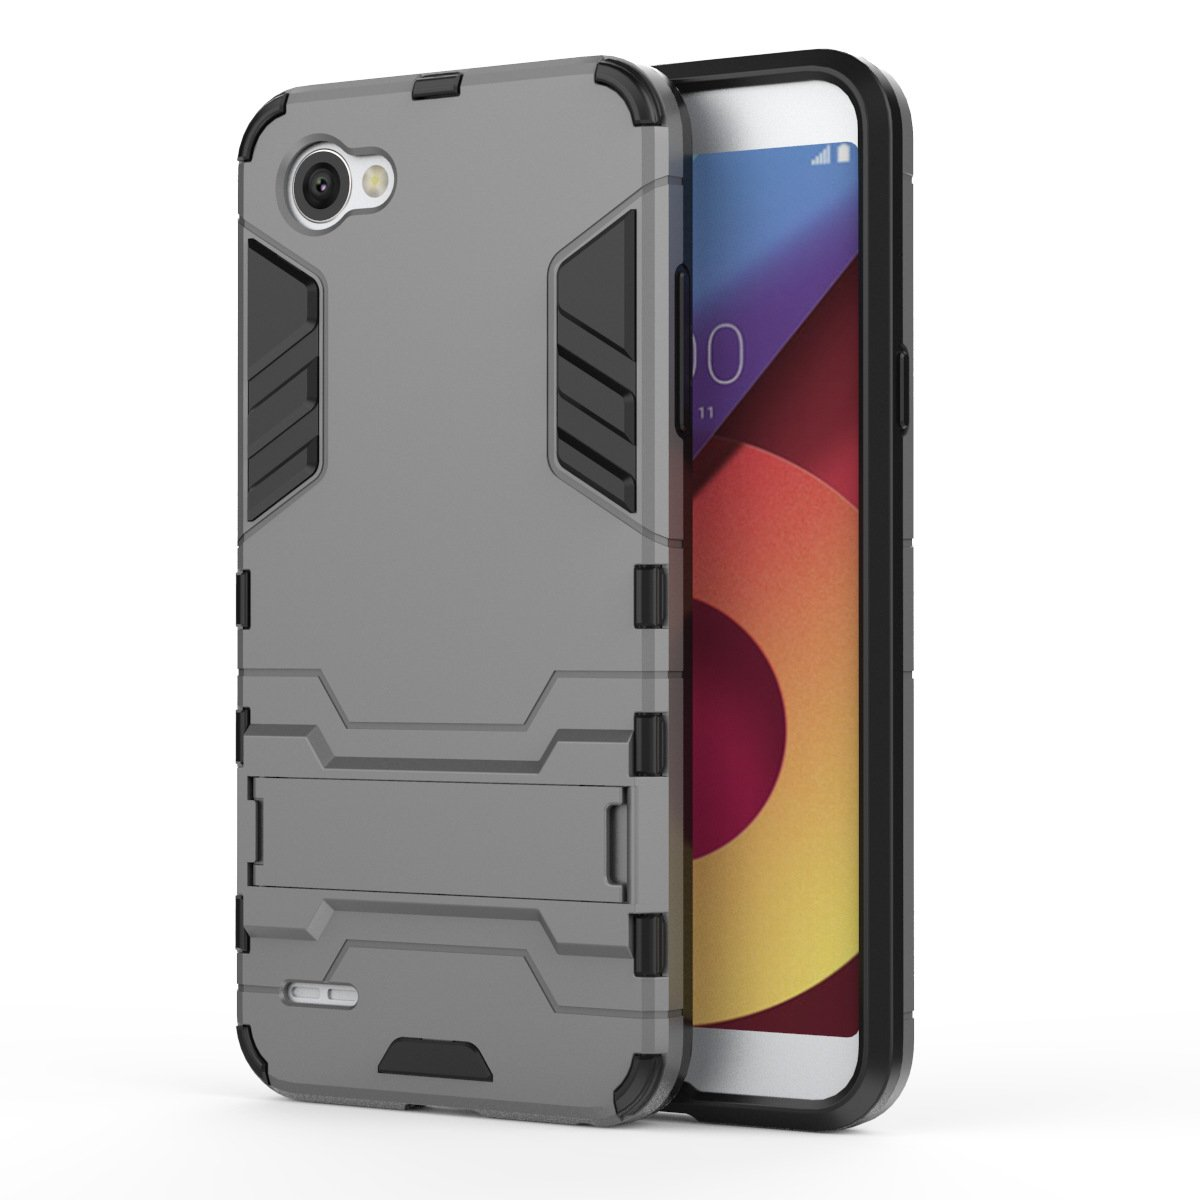 MaiJin Shockproof with Kickstand Feature Case for LG Q6 (5.5 inch) Hybrid Dual Layer Armor Defender Protective Cover (Grey)